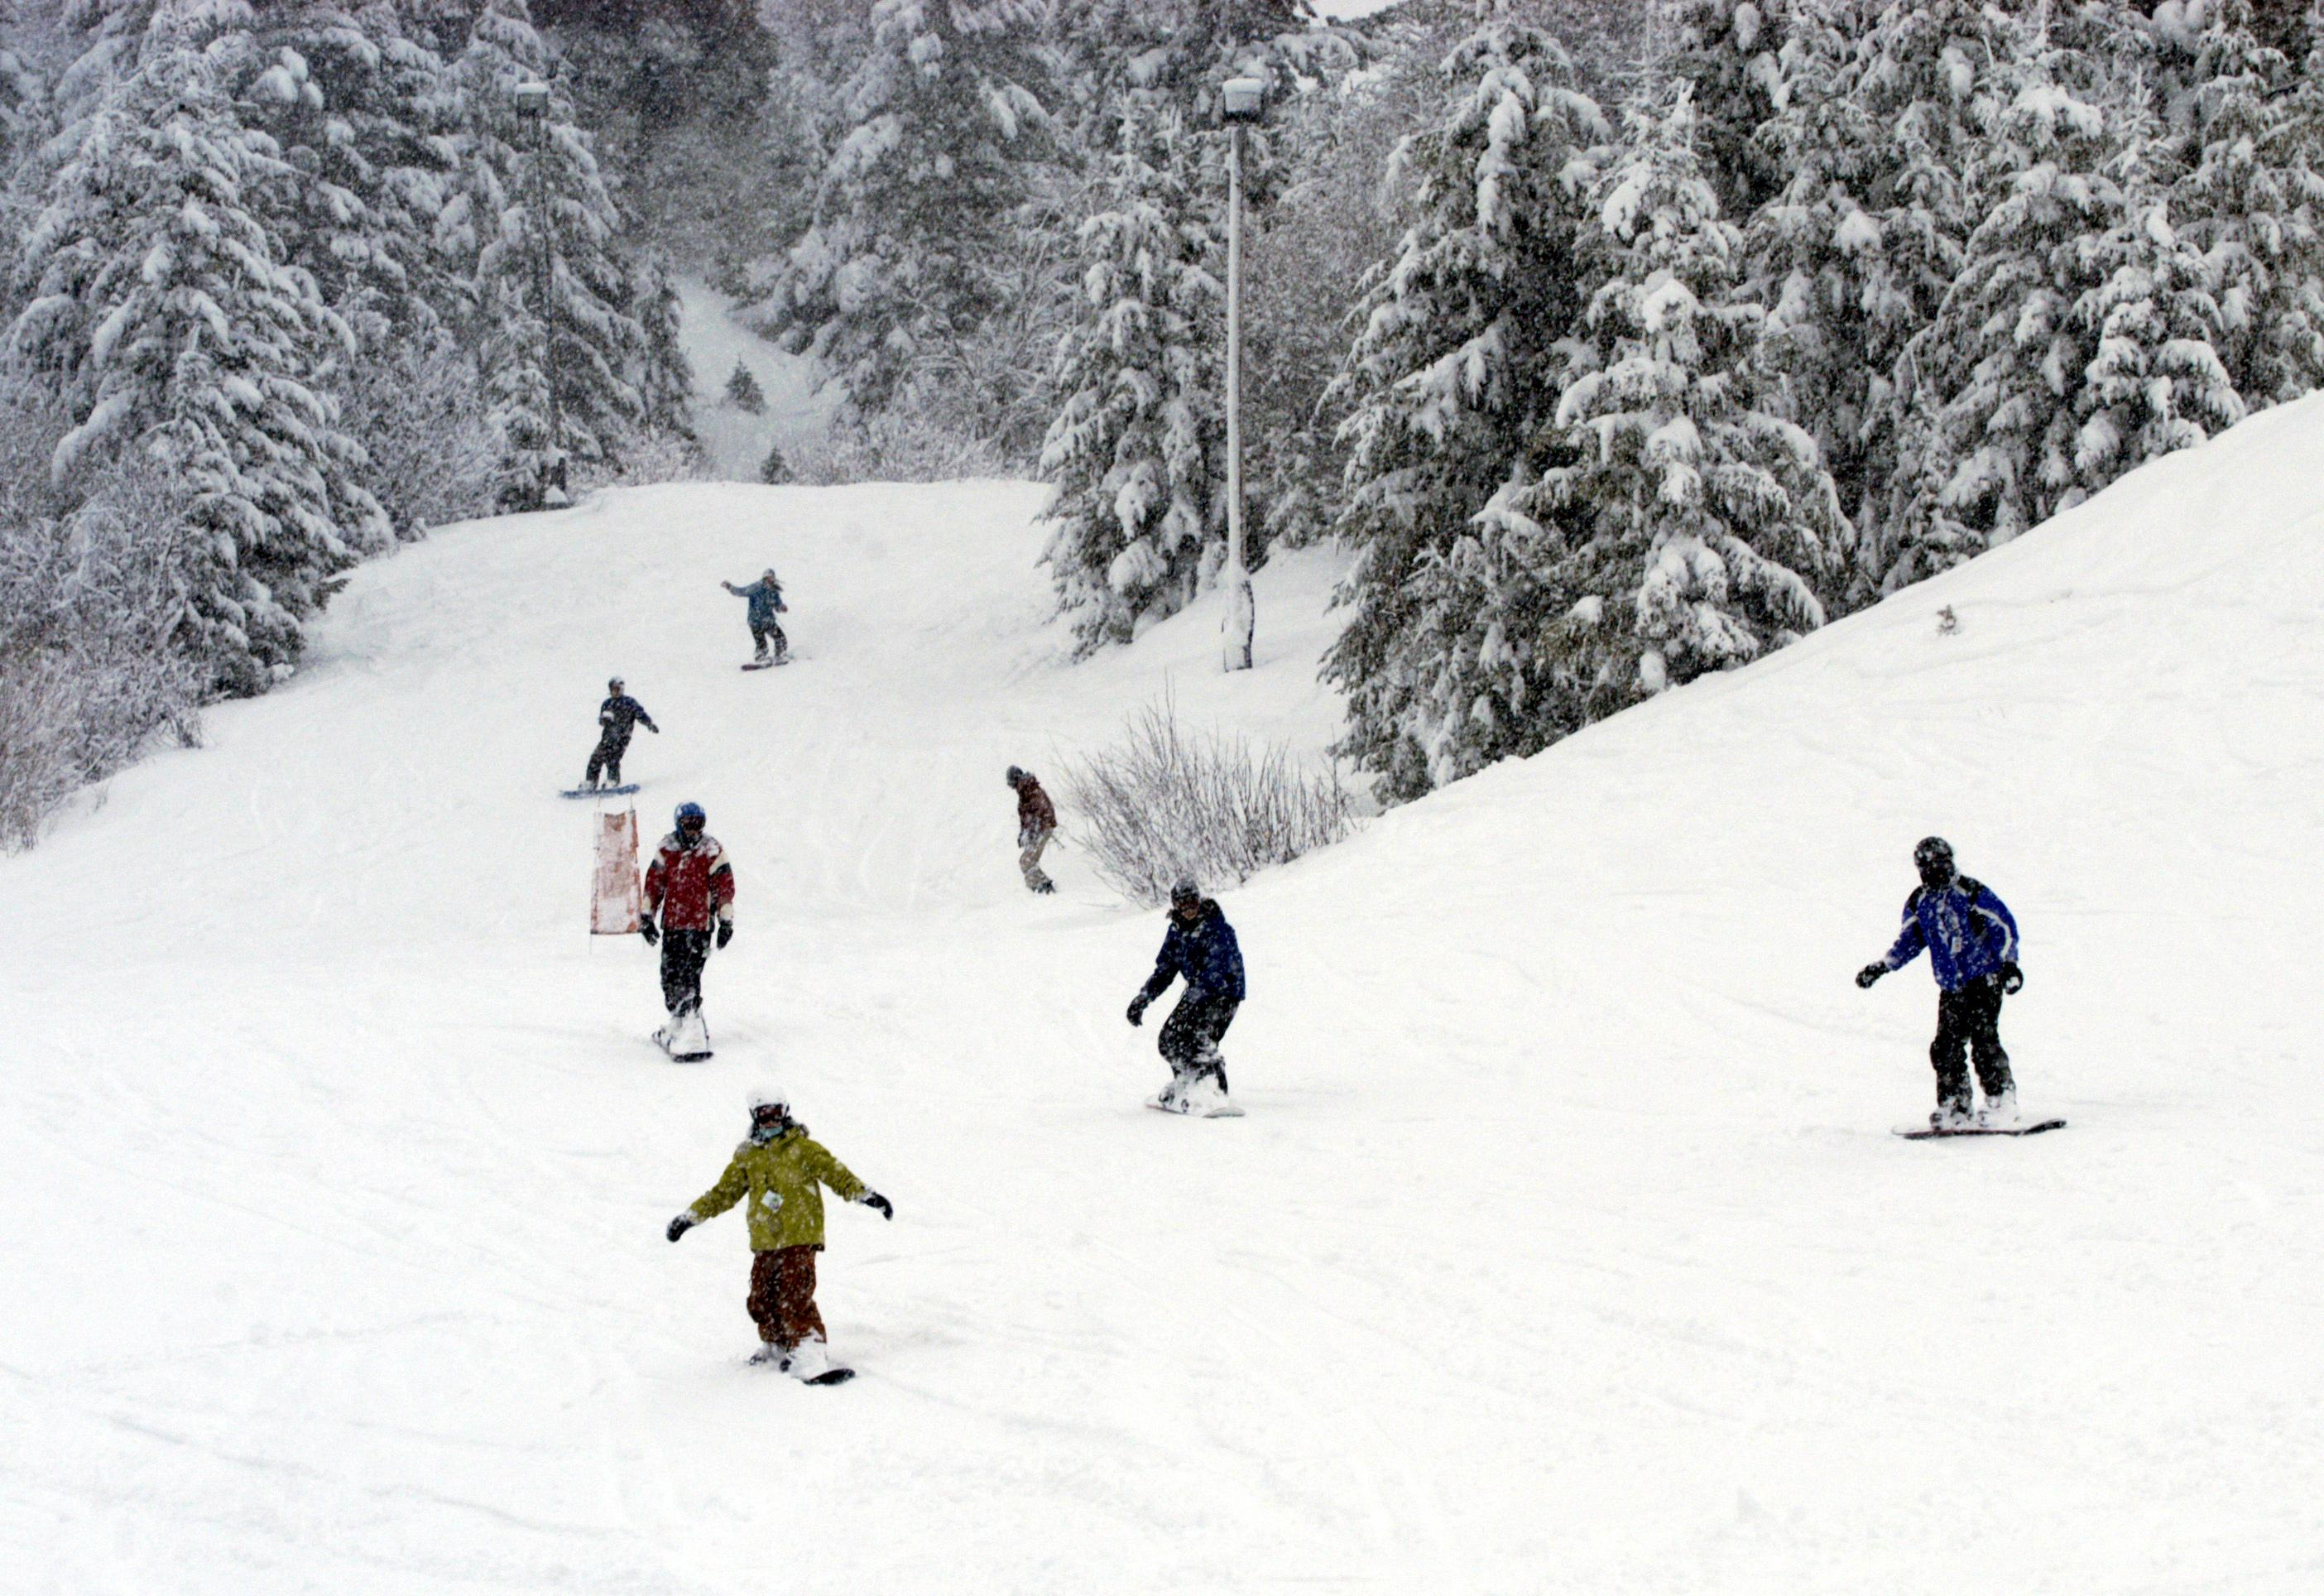 bogus basin ski area gets approval for snow-making system | the